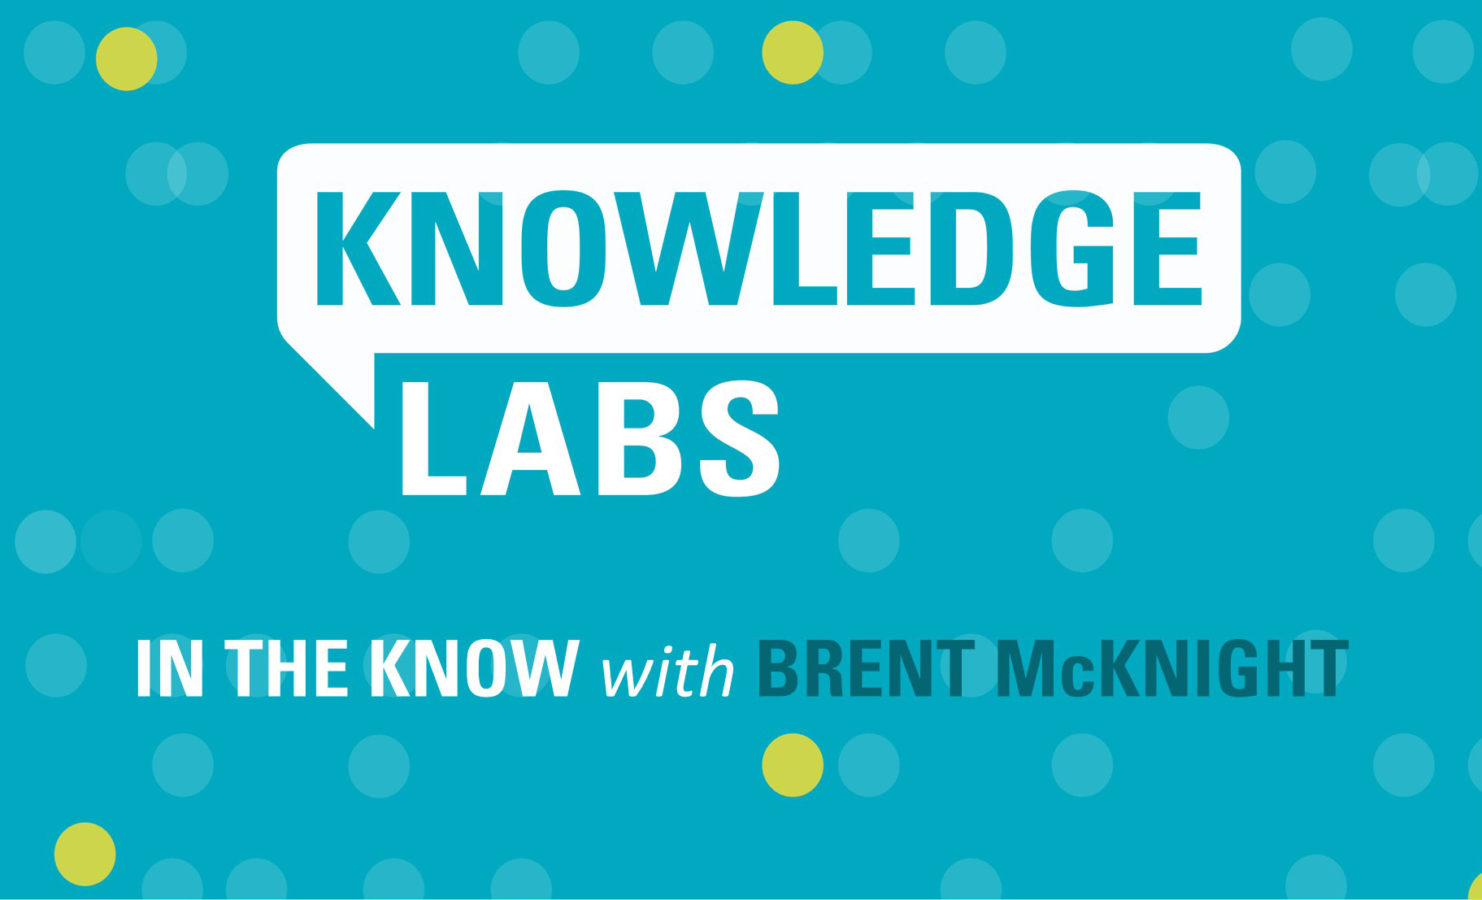 In the Know with Brent McKnight